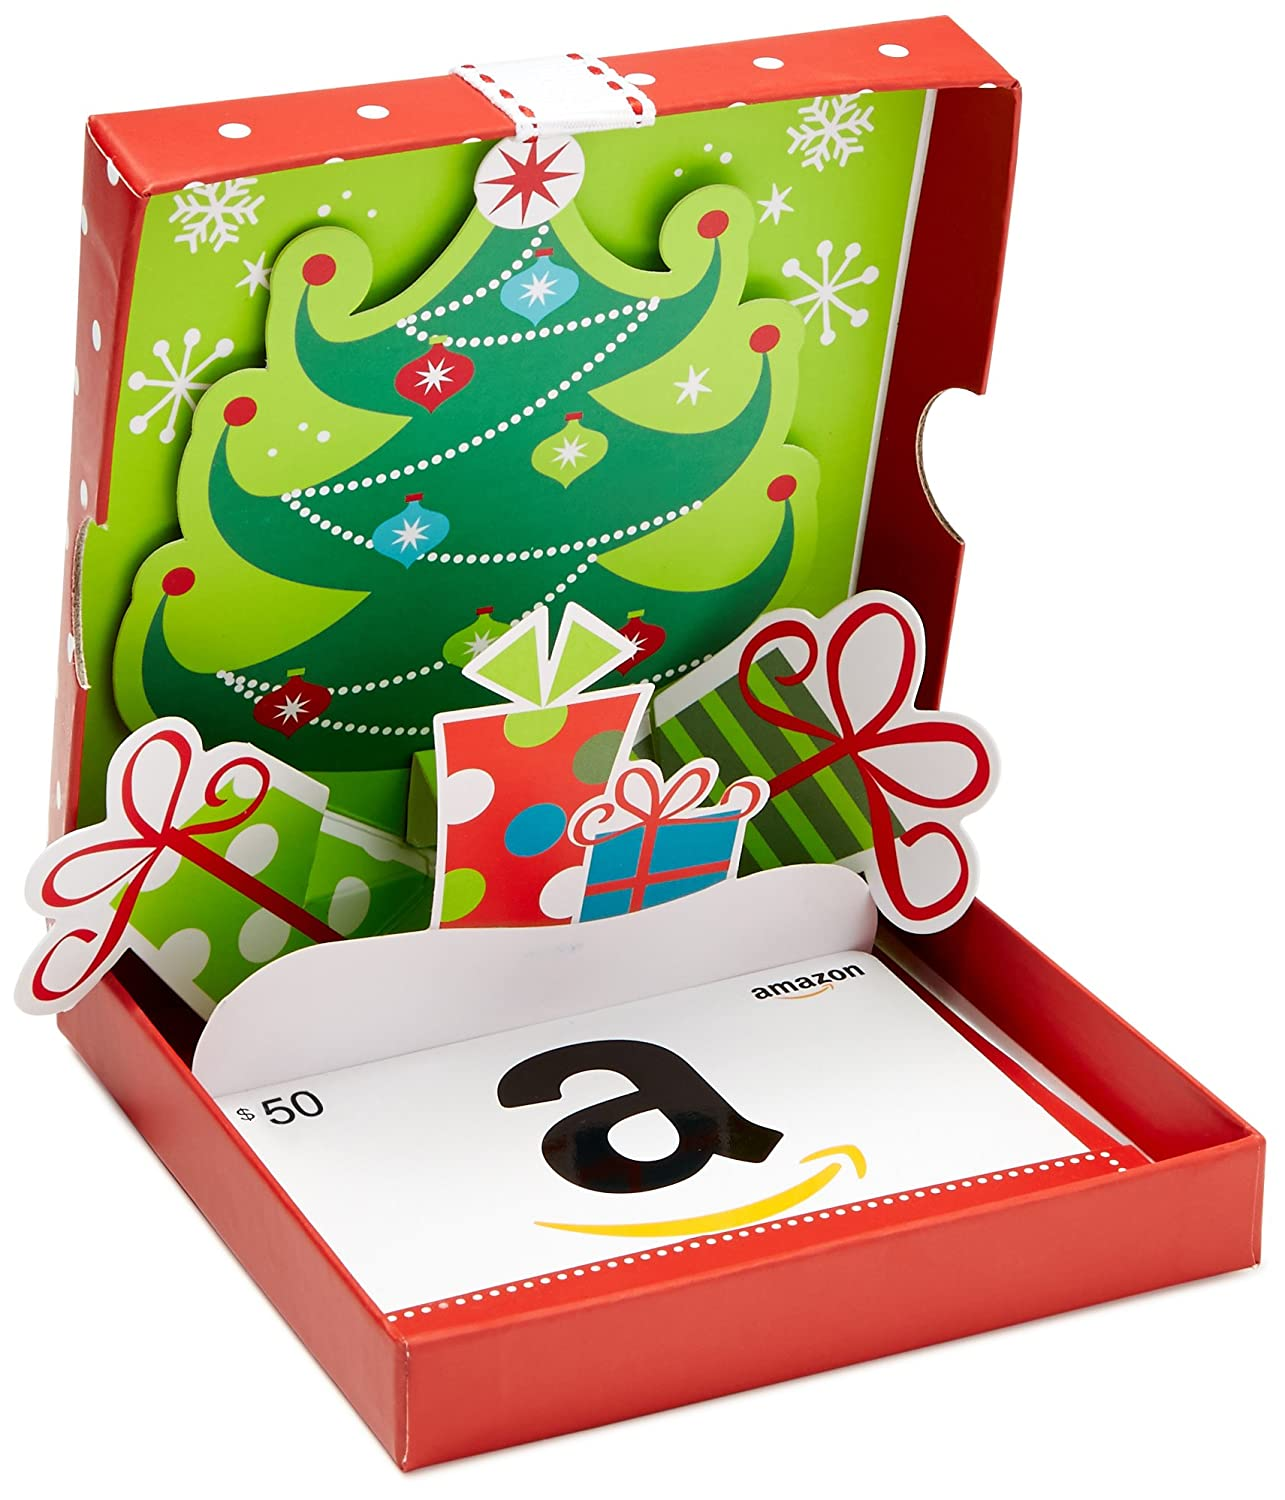 Amazon.ca Gift Card in a Holiday Pop-Up Box (Classic White Card Design) Amazon.com.ca Inc.